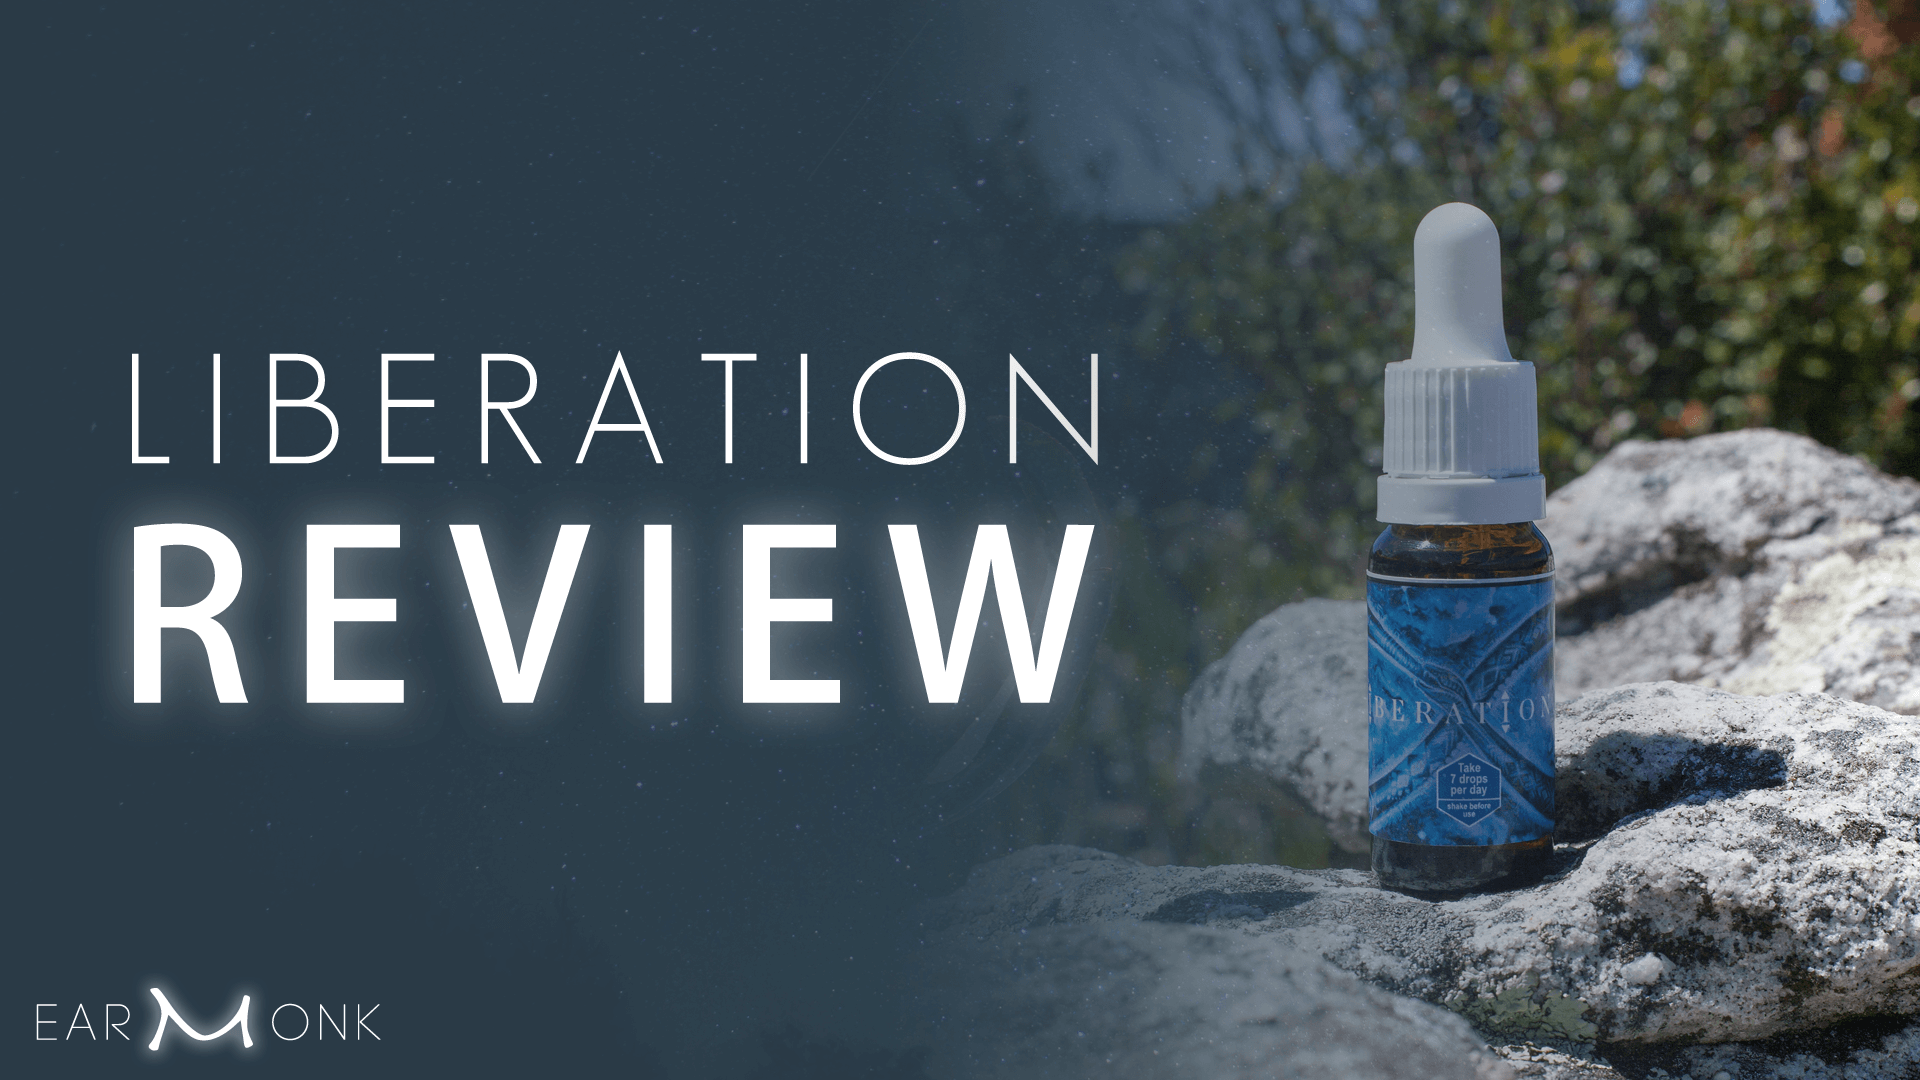 Liberation the Remedy Review